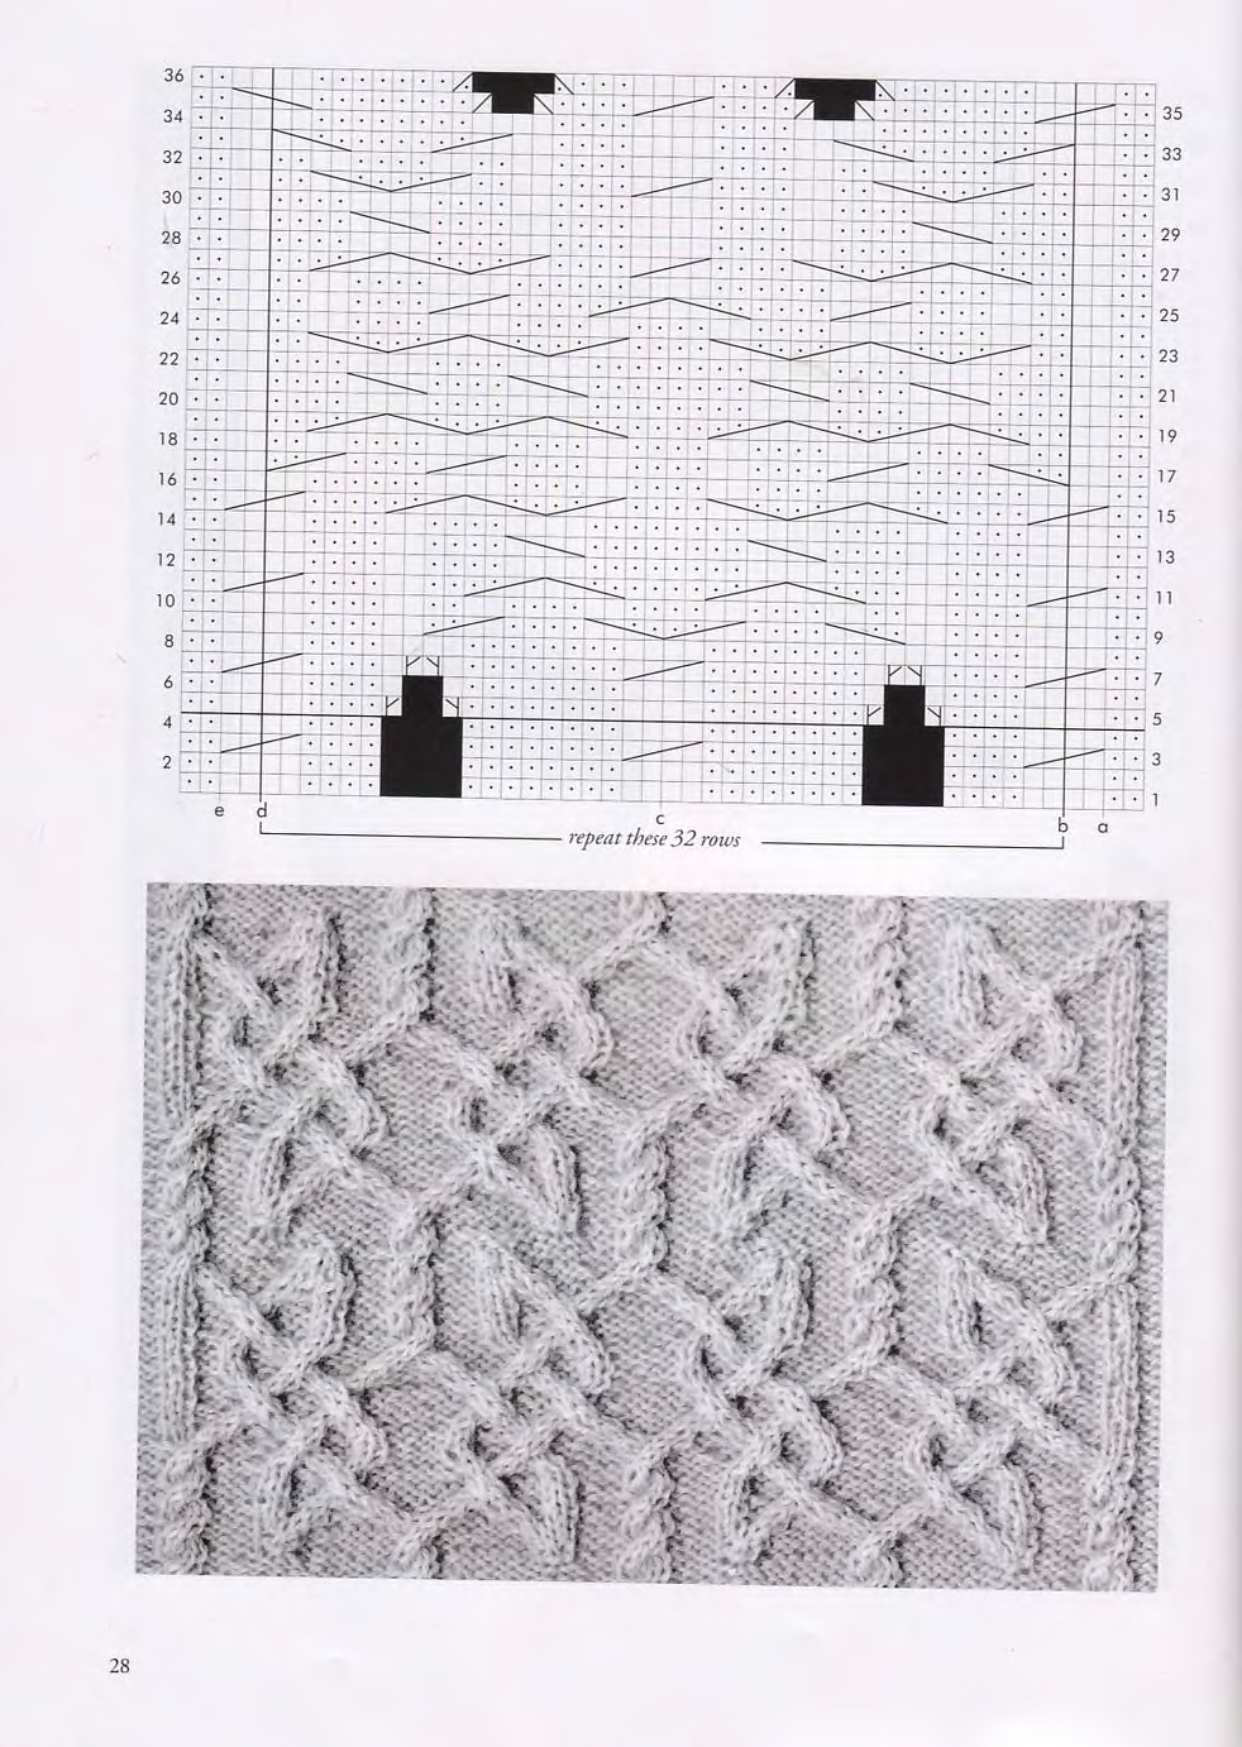 Viking_Patterns_for_Knitting_24.png | Cable knitting | Pinterest ...